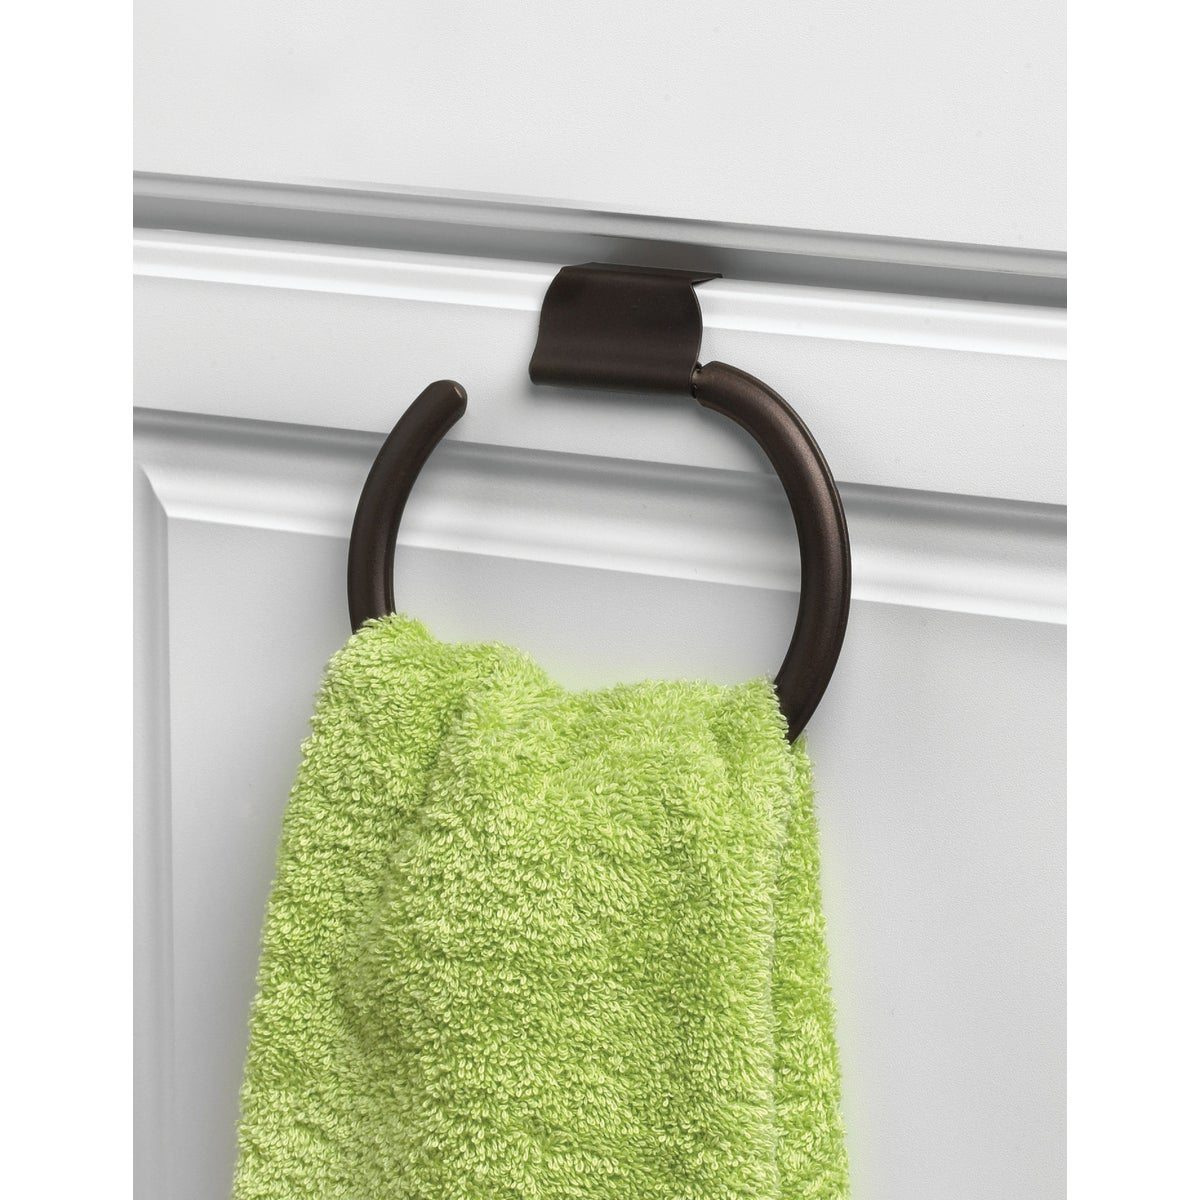 ASHLEY OTCD TOWEL RING - 58924 by Spectrum Diversified